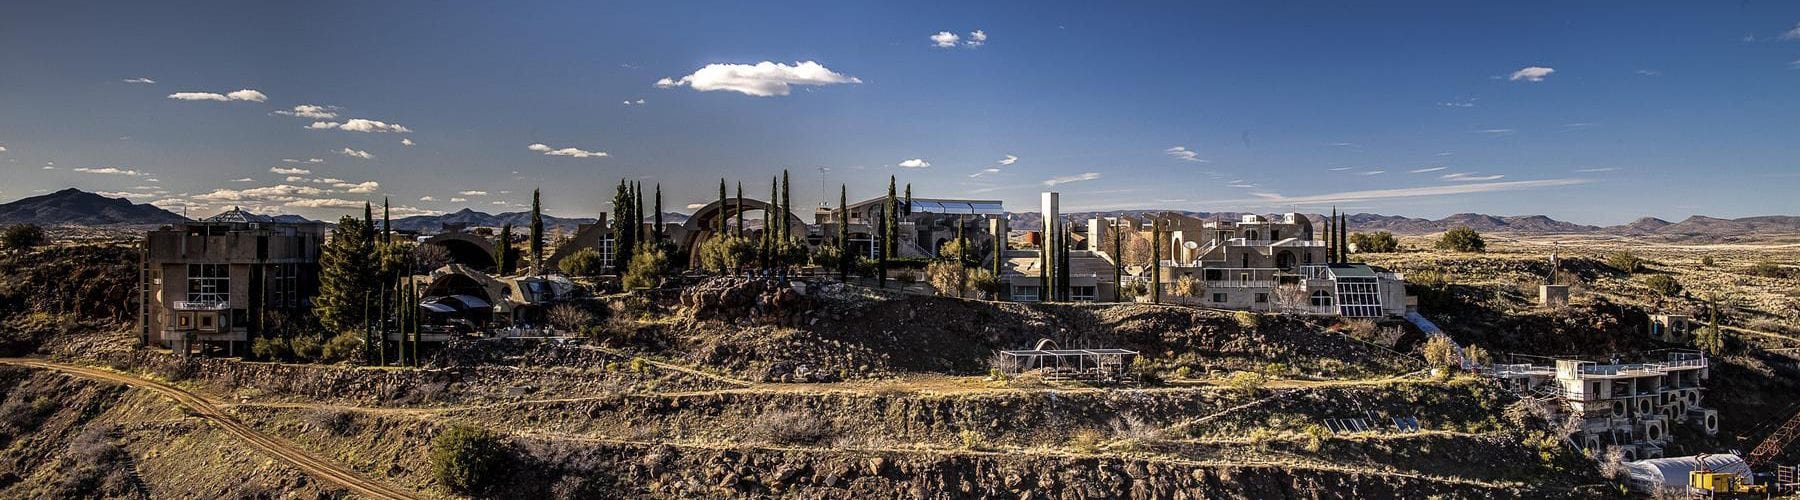 FORM Music Festival Returns To Arcosanti In 2019